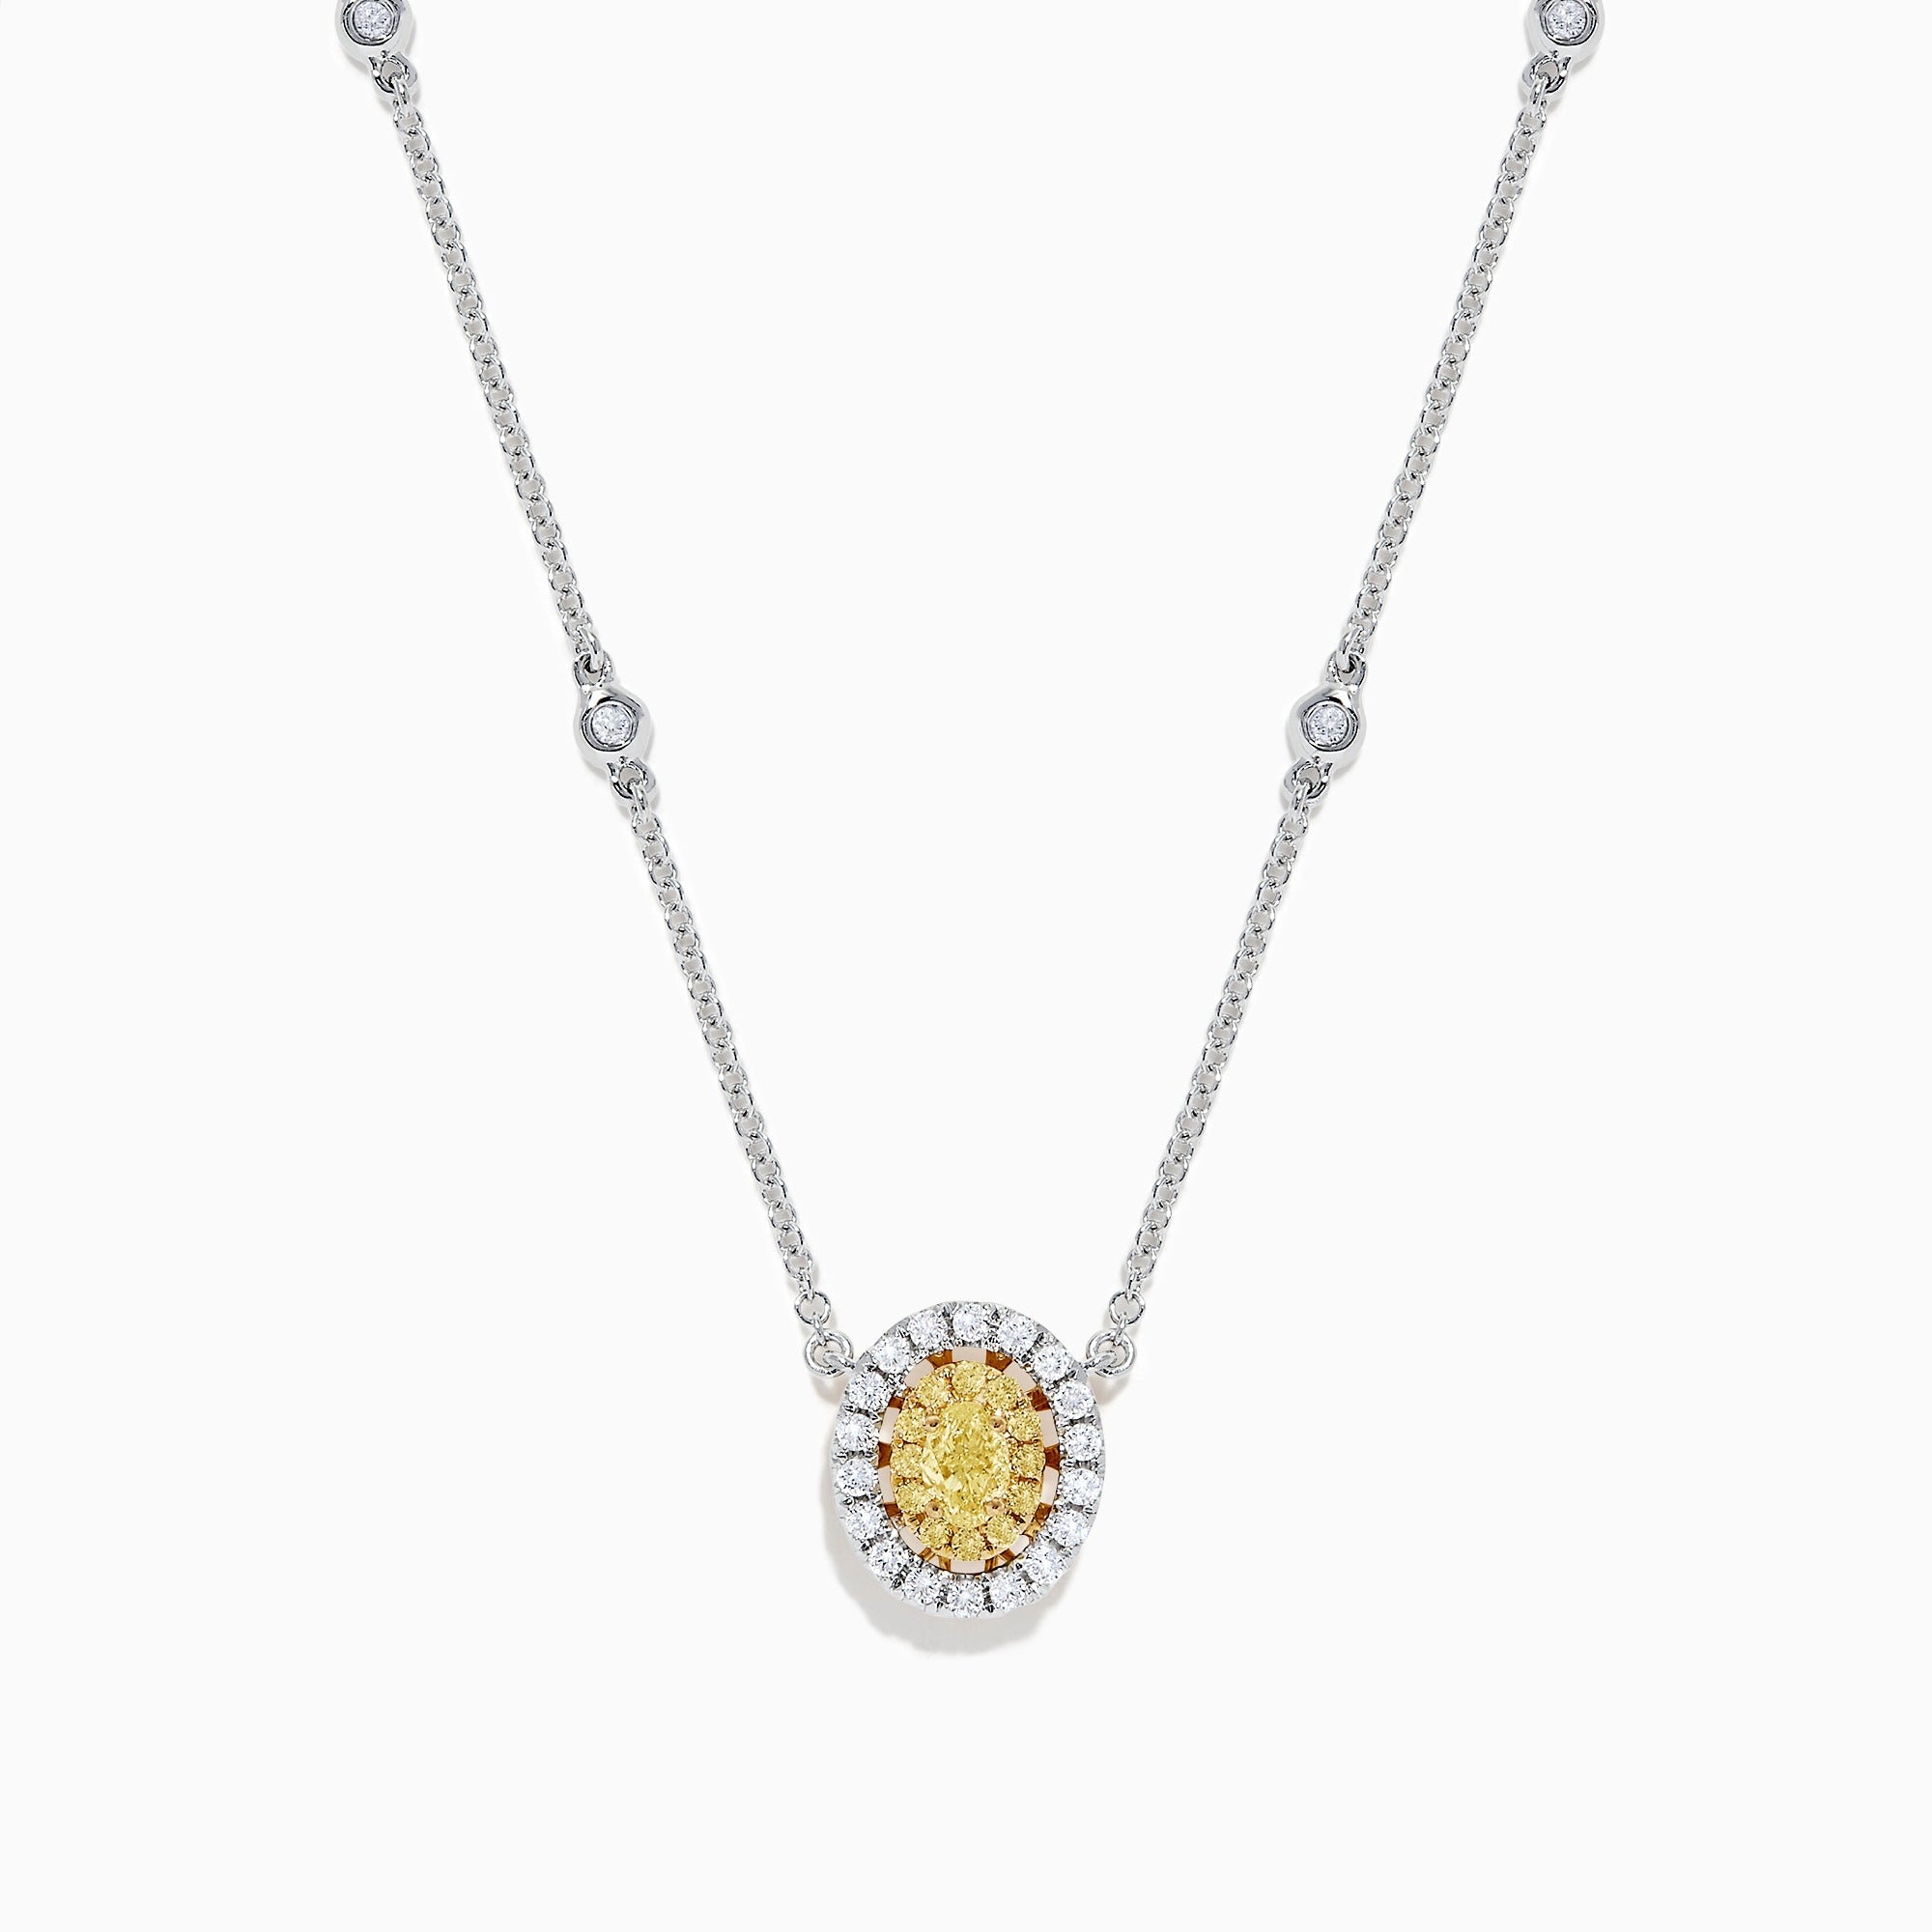 Effy Canare 14K White Gold Yellow and White Diamond Necklace, 0.81 TCW